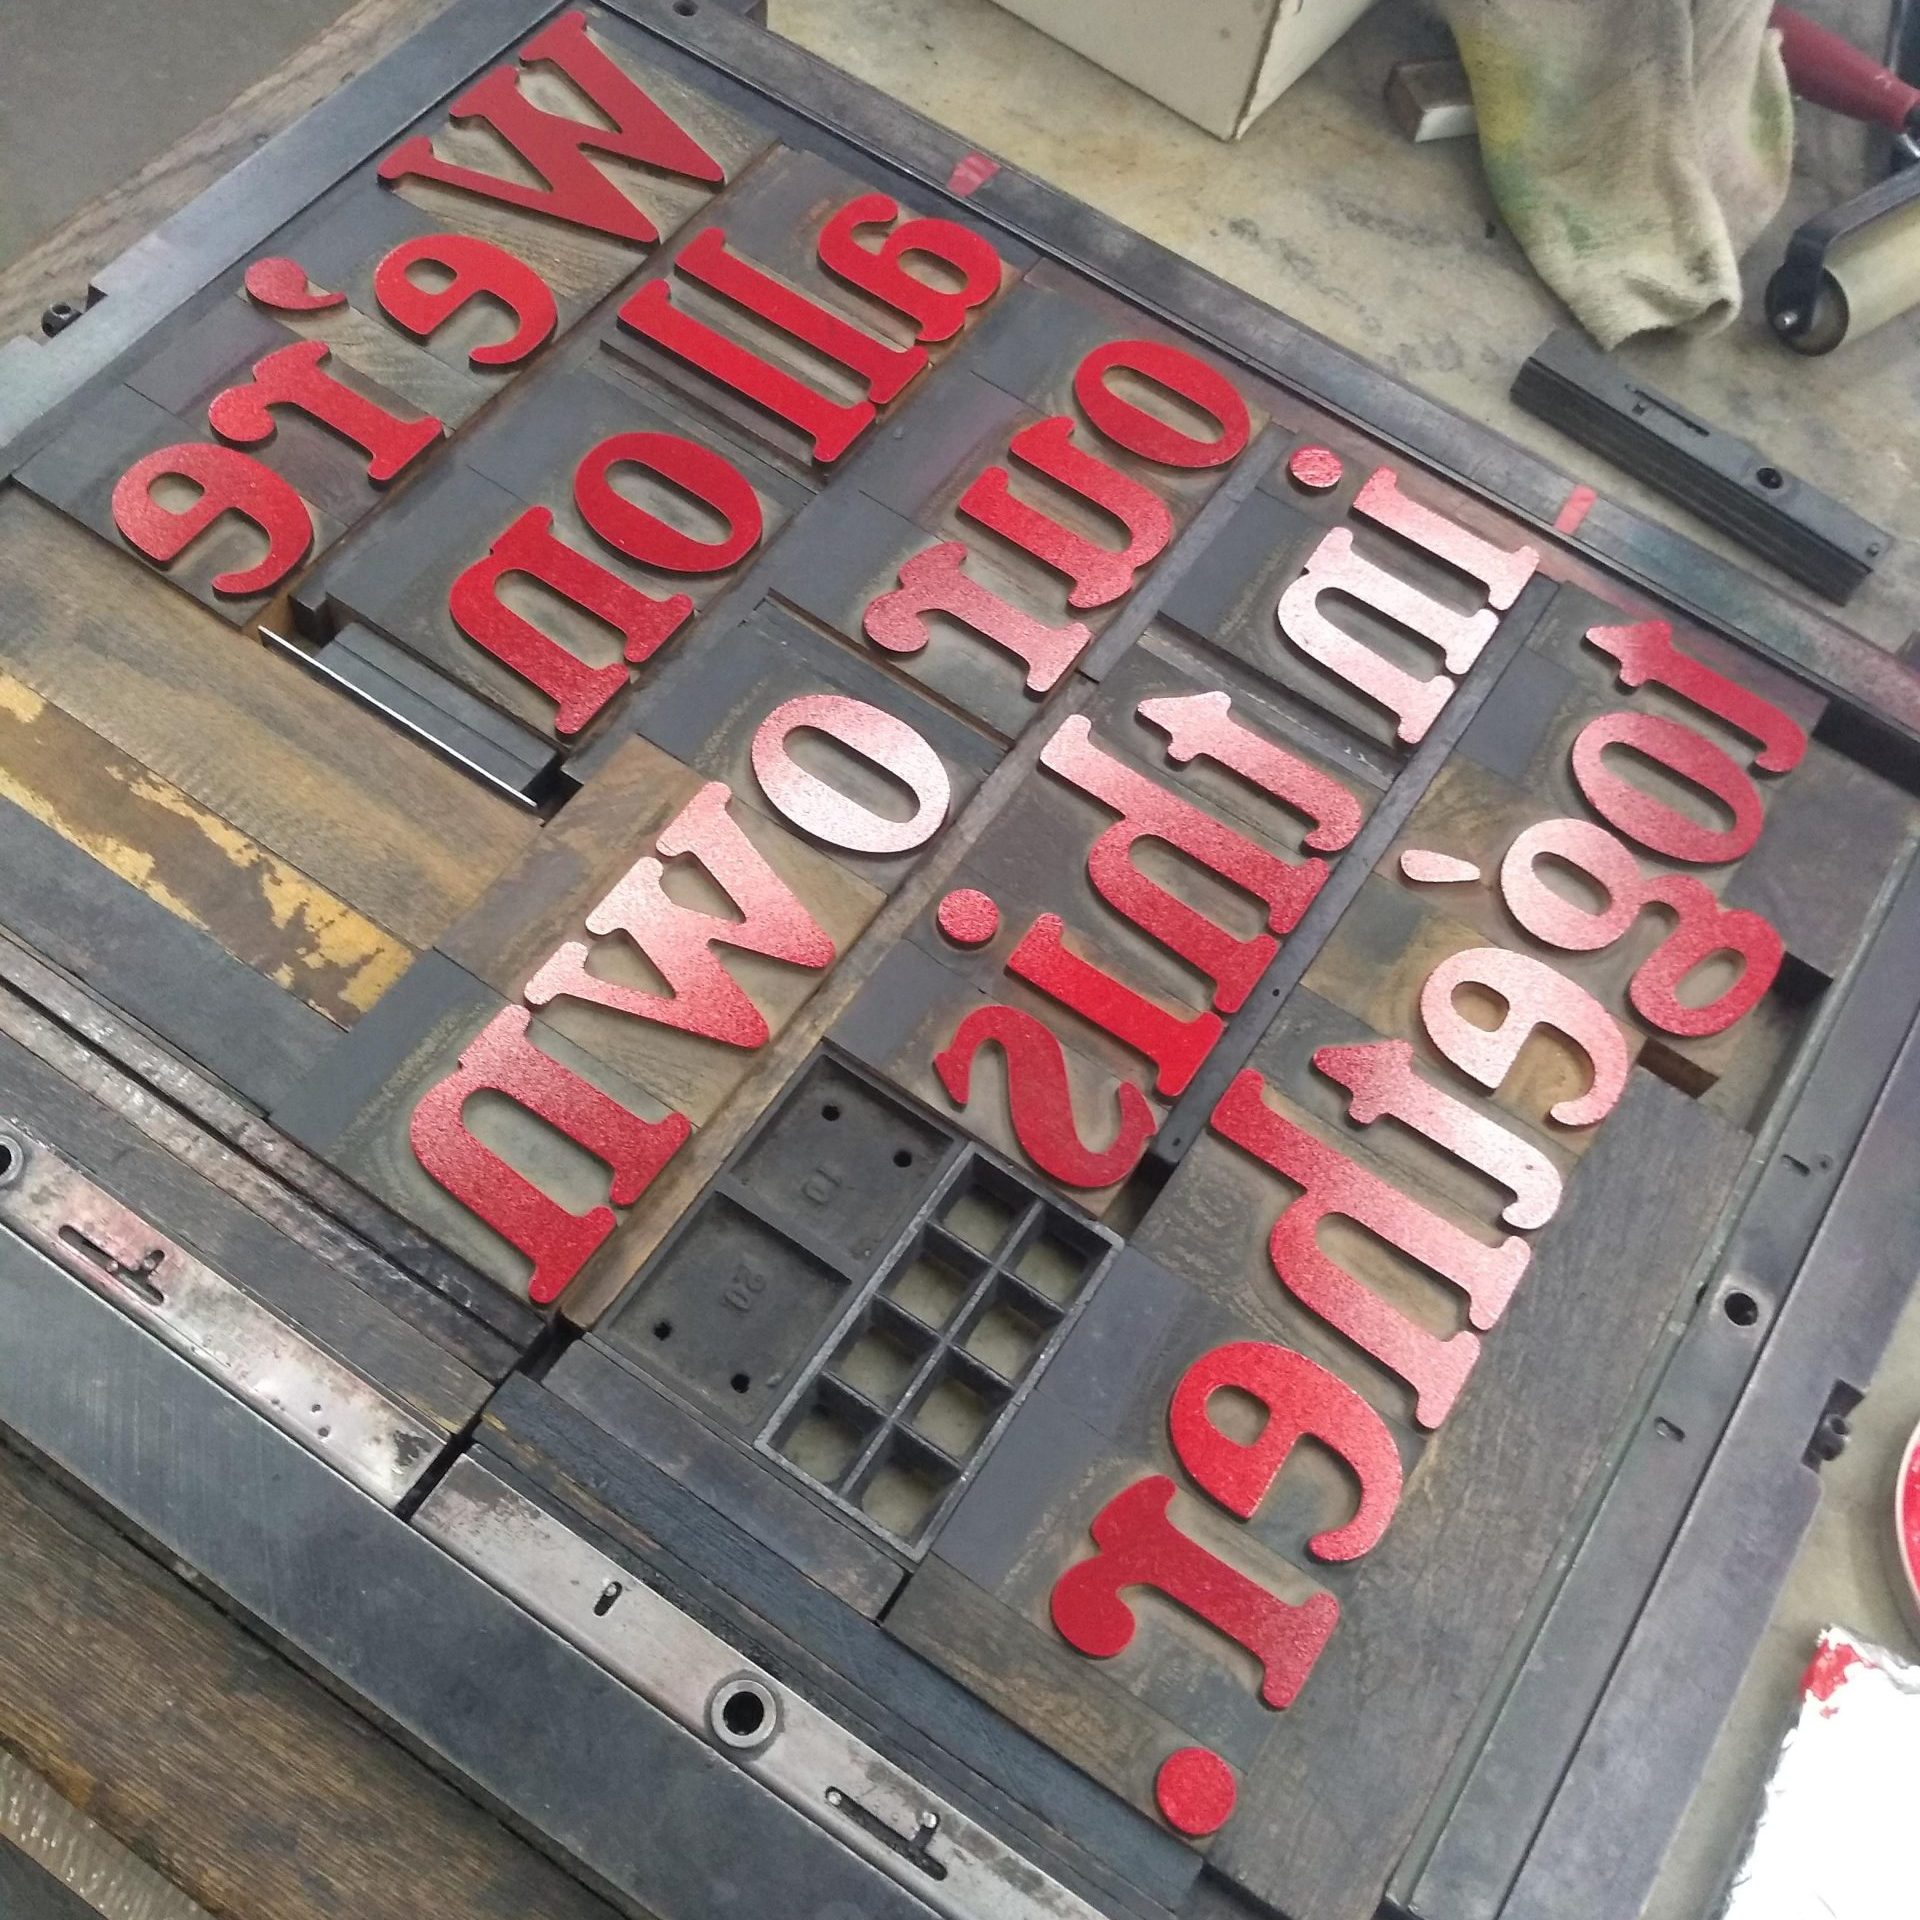 Wood type locked up for printing